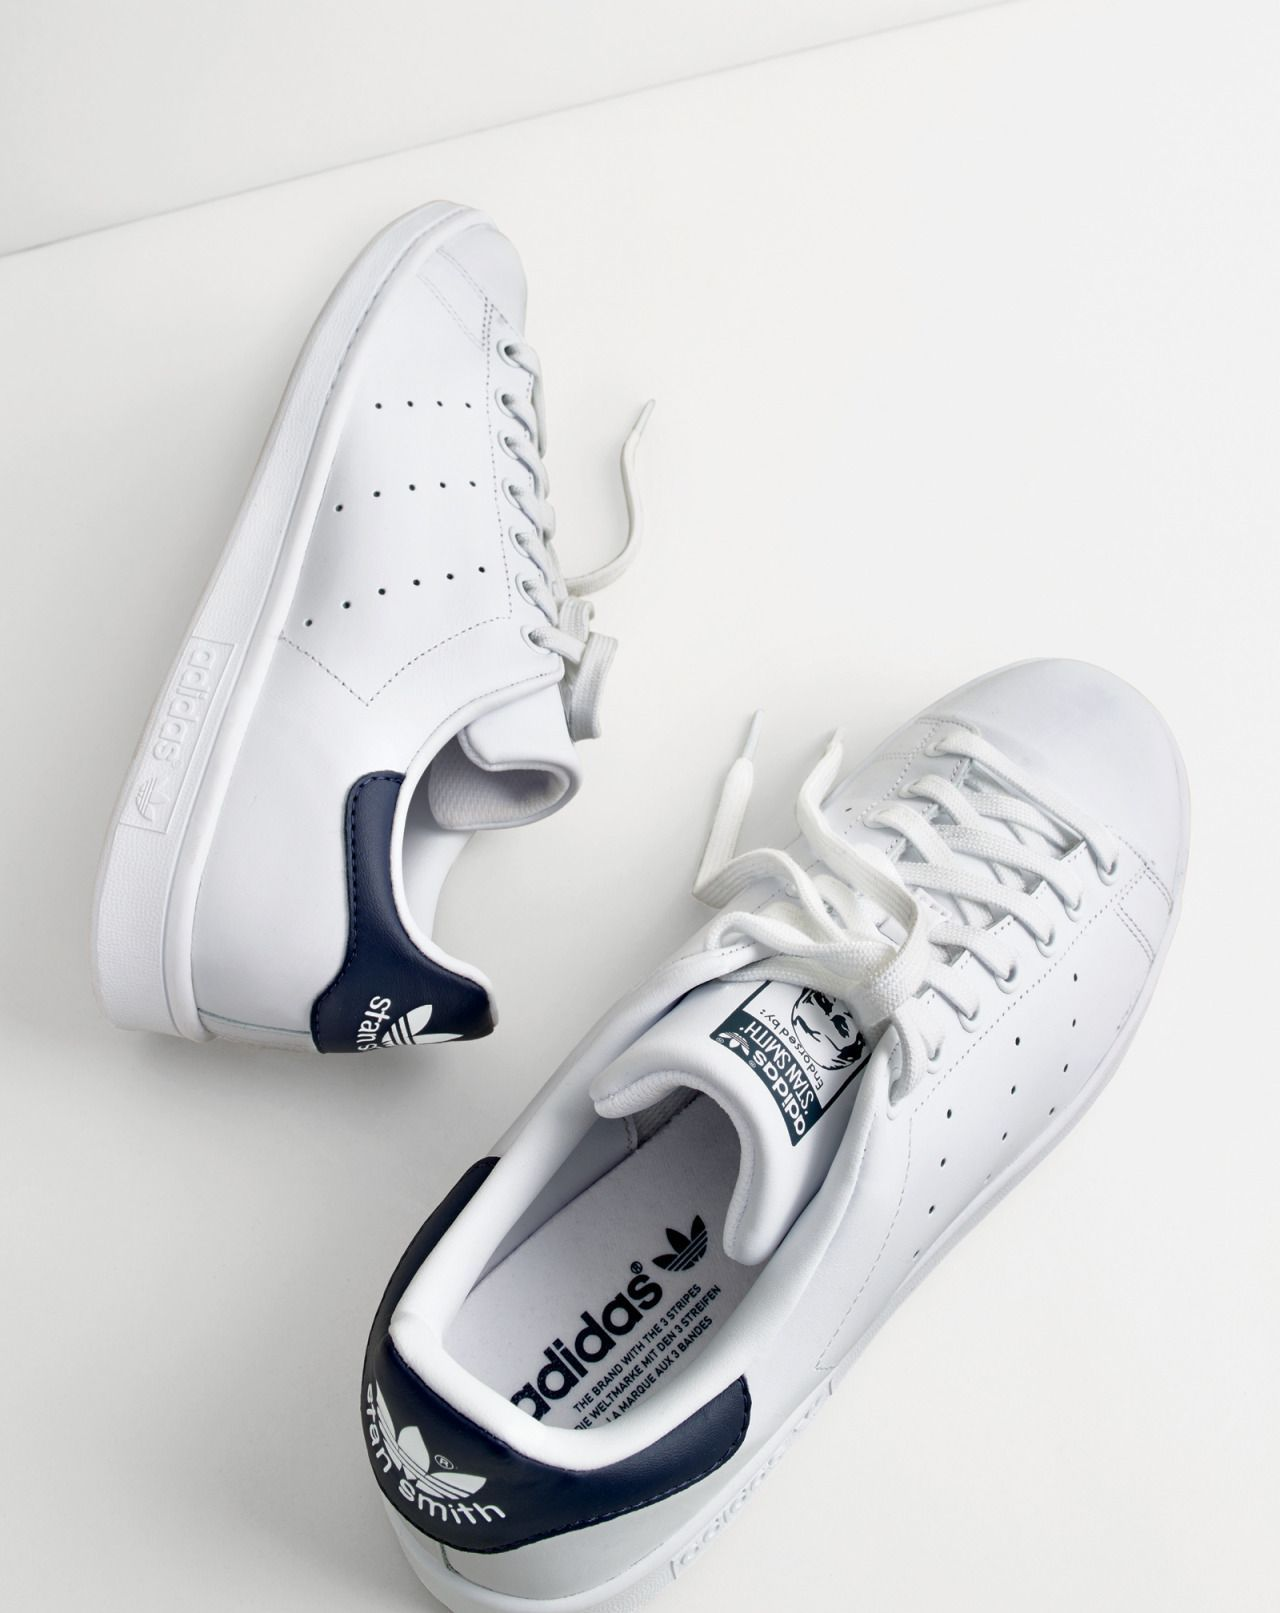 Adidas Stan Smith J 'Iridescent' | More Sneakers